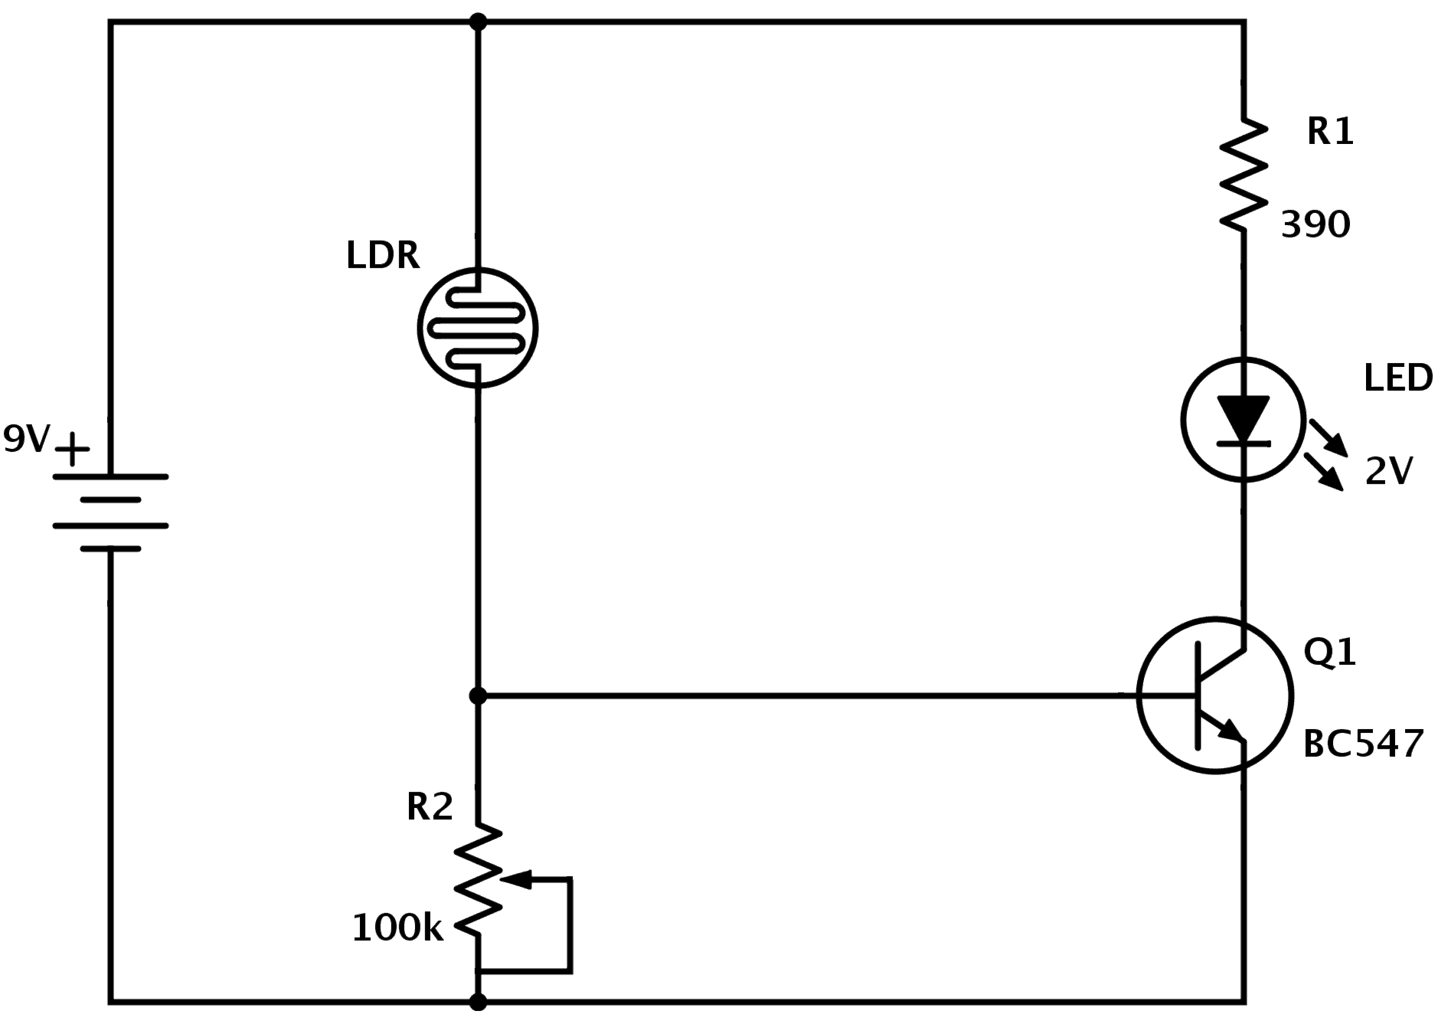 Software Is Very Useful When Simulating This Type Of Circuit Diagram Ldr Build Electronic Circuits